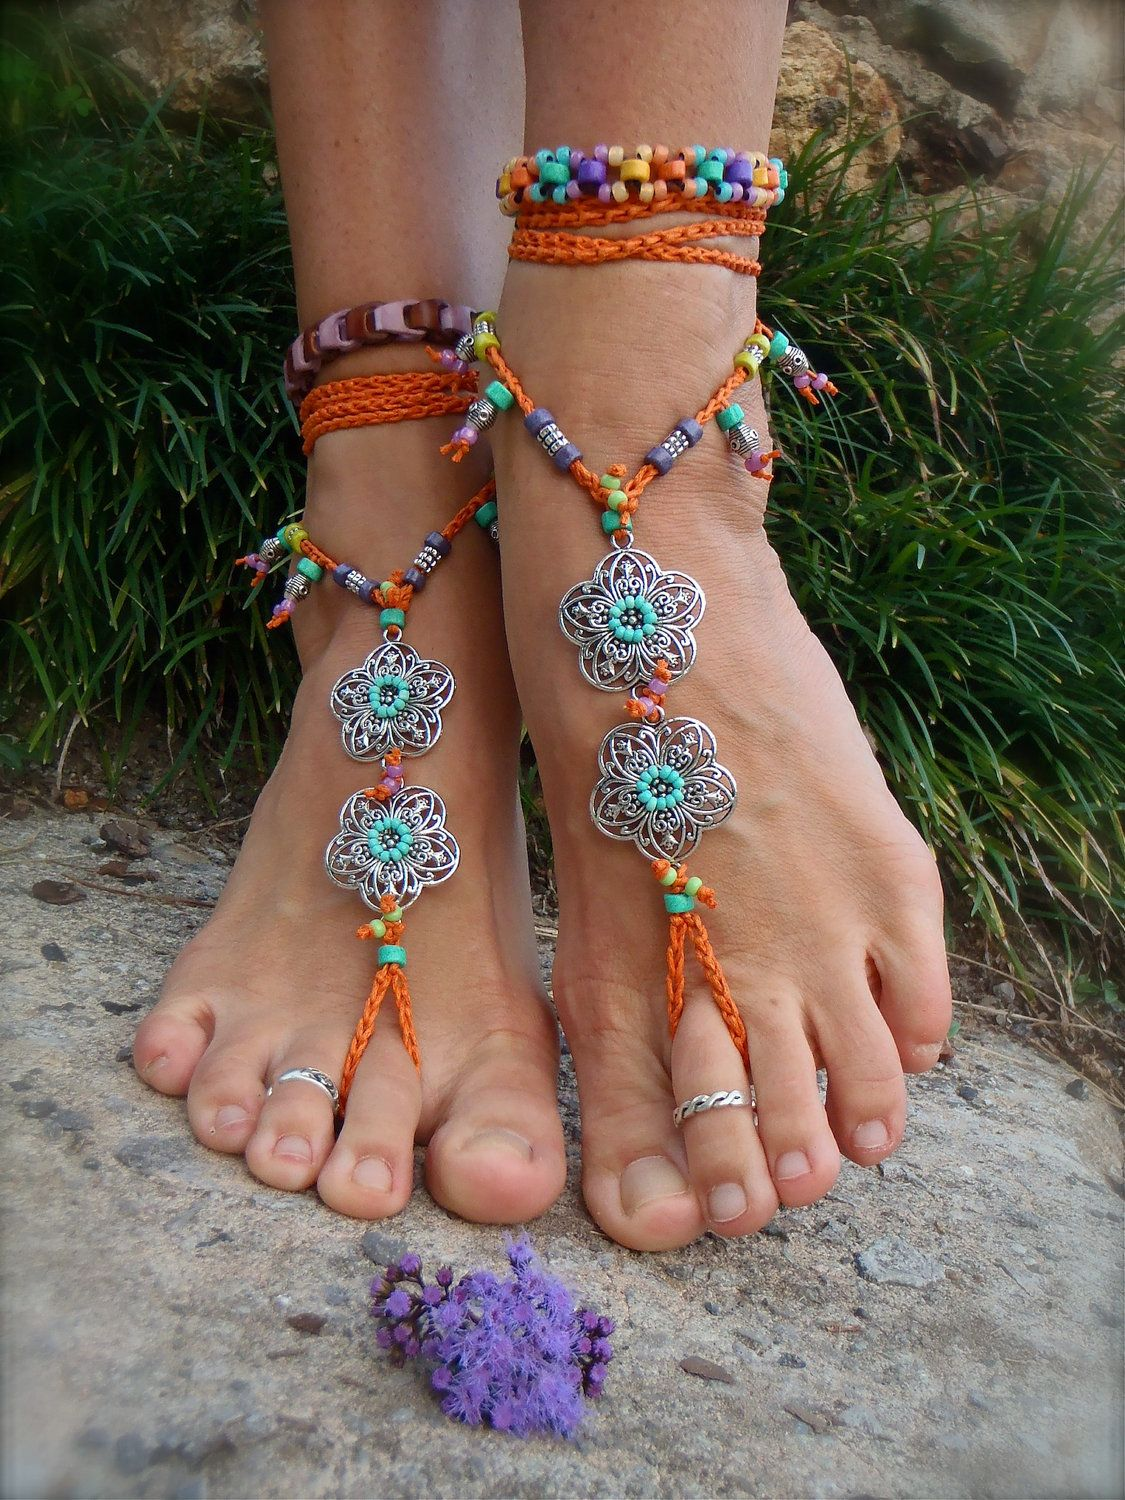 Special Sandals Shoes Holic Bohemian Shoes Bare Foot Sandals